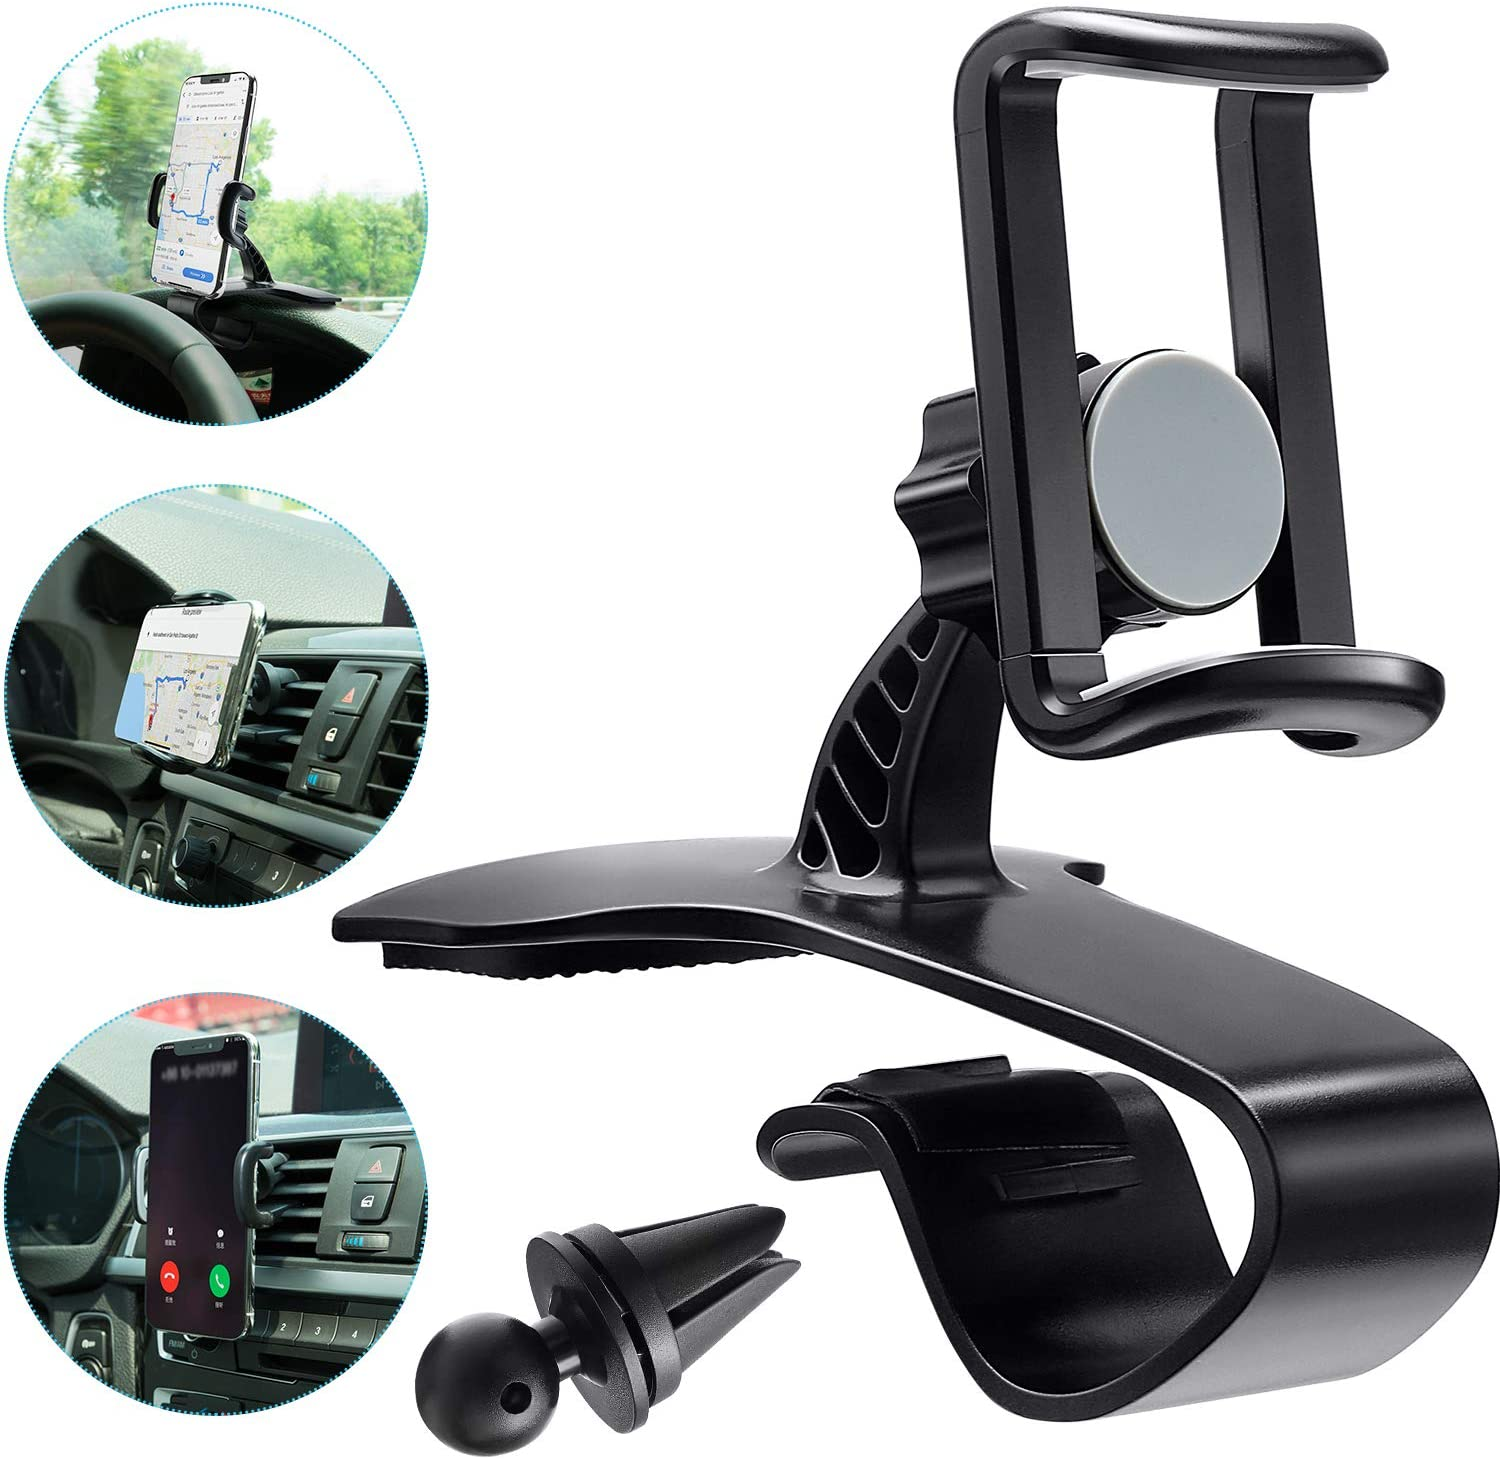 Car Phone Holder Cell Phone Holder for Car Dashboard Cell Phone Holder Dashboard Mount Car Phone Holder Compatible with Smartphones iPhone Samsung (Style 1, Adjustable Mobile Clip)